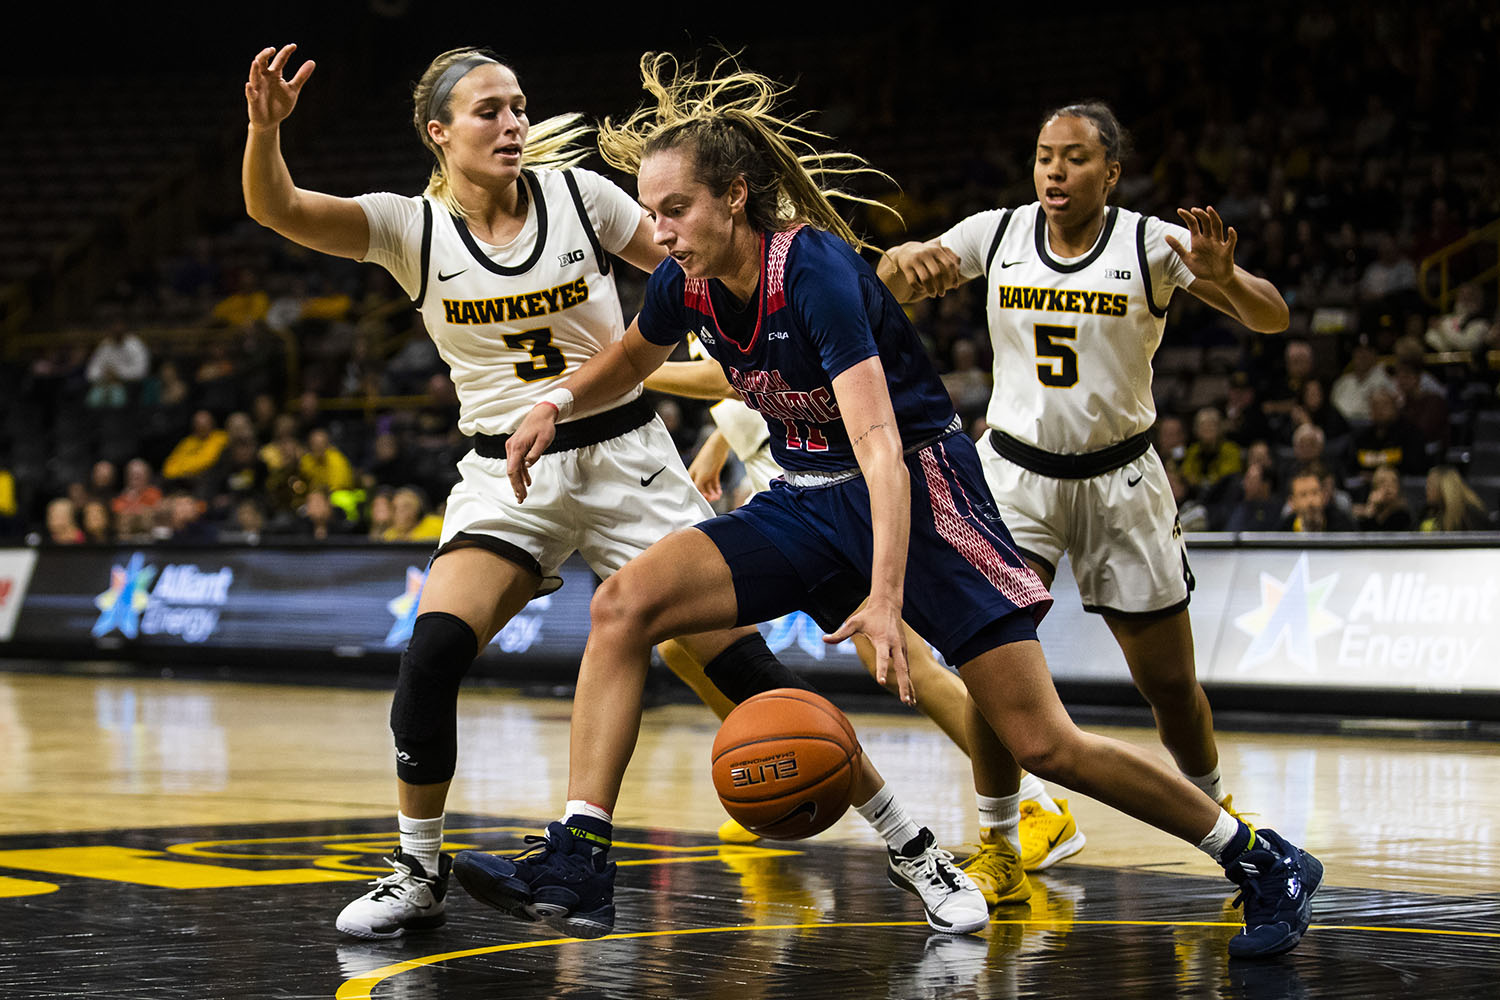 Iowa guard Makenzie Meyer guards Florida Atlantic forward Juliette Gauthier during the women's basketball game against Florida Atlantic on Thursday. The Hawkeyes defeated the Owls 85-53.